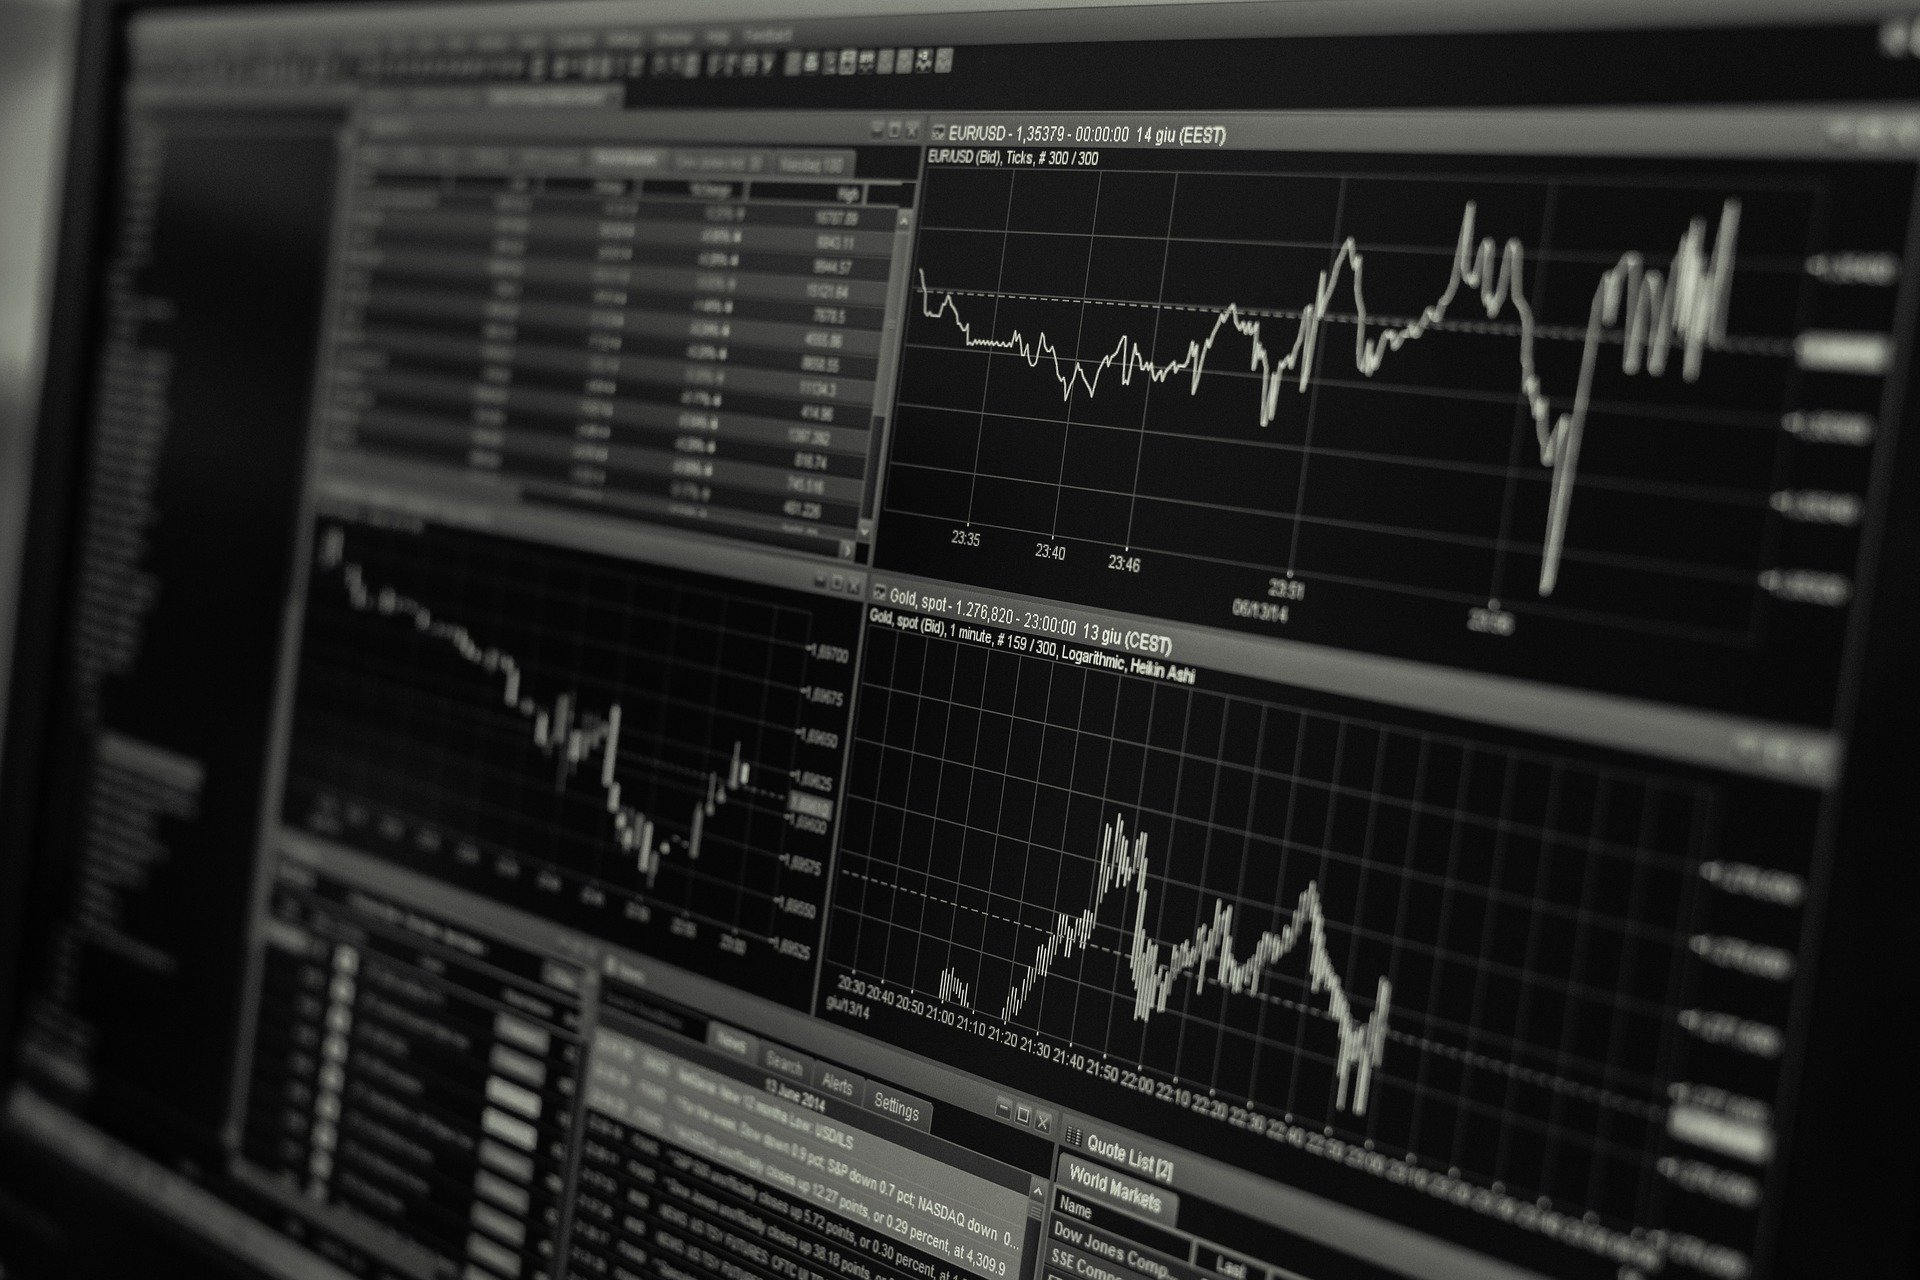 Black and white stock trader screen